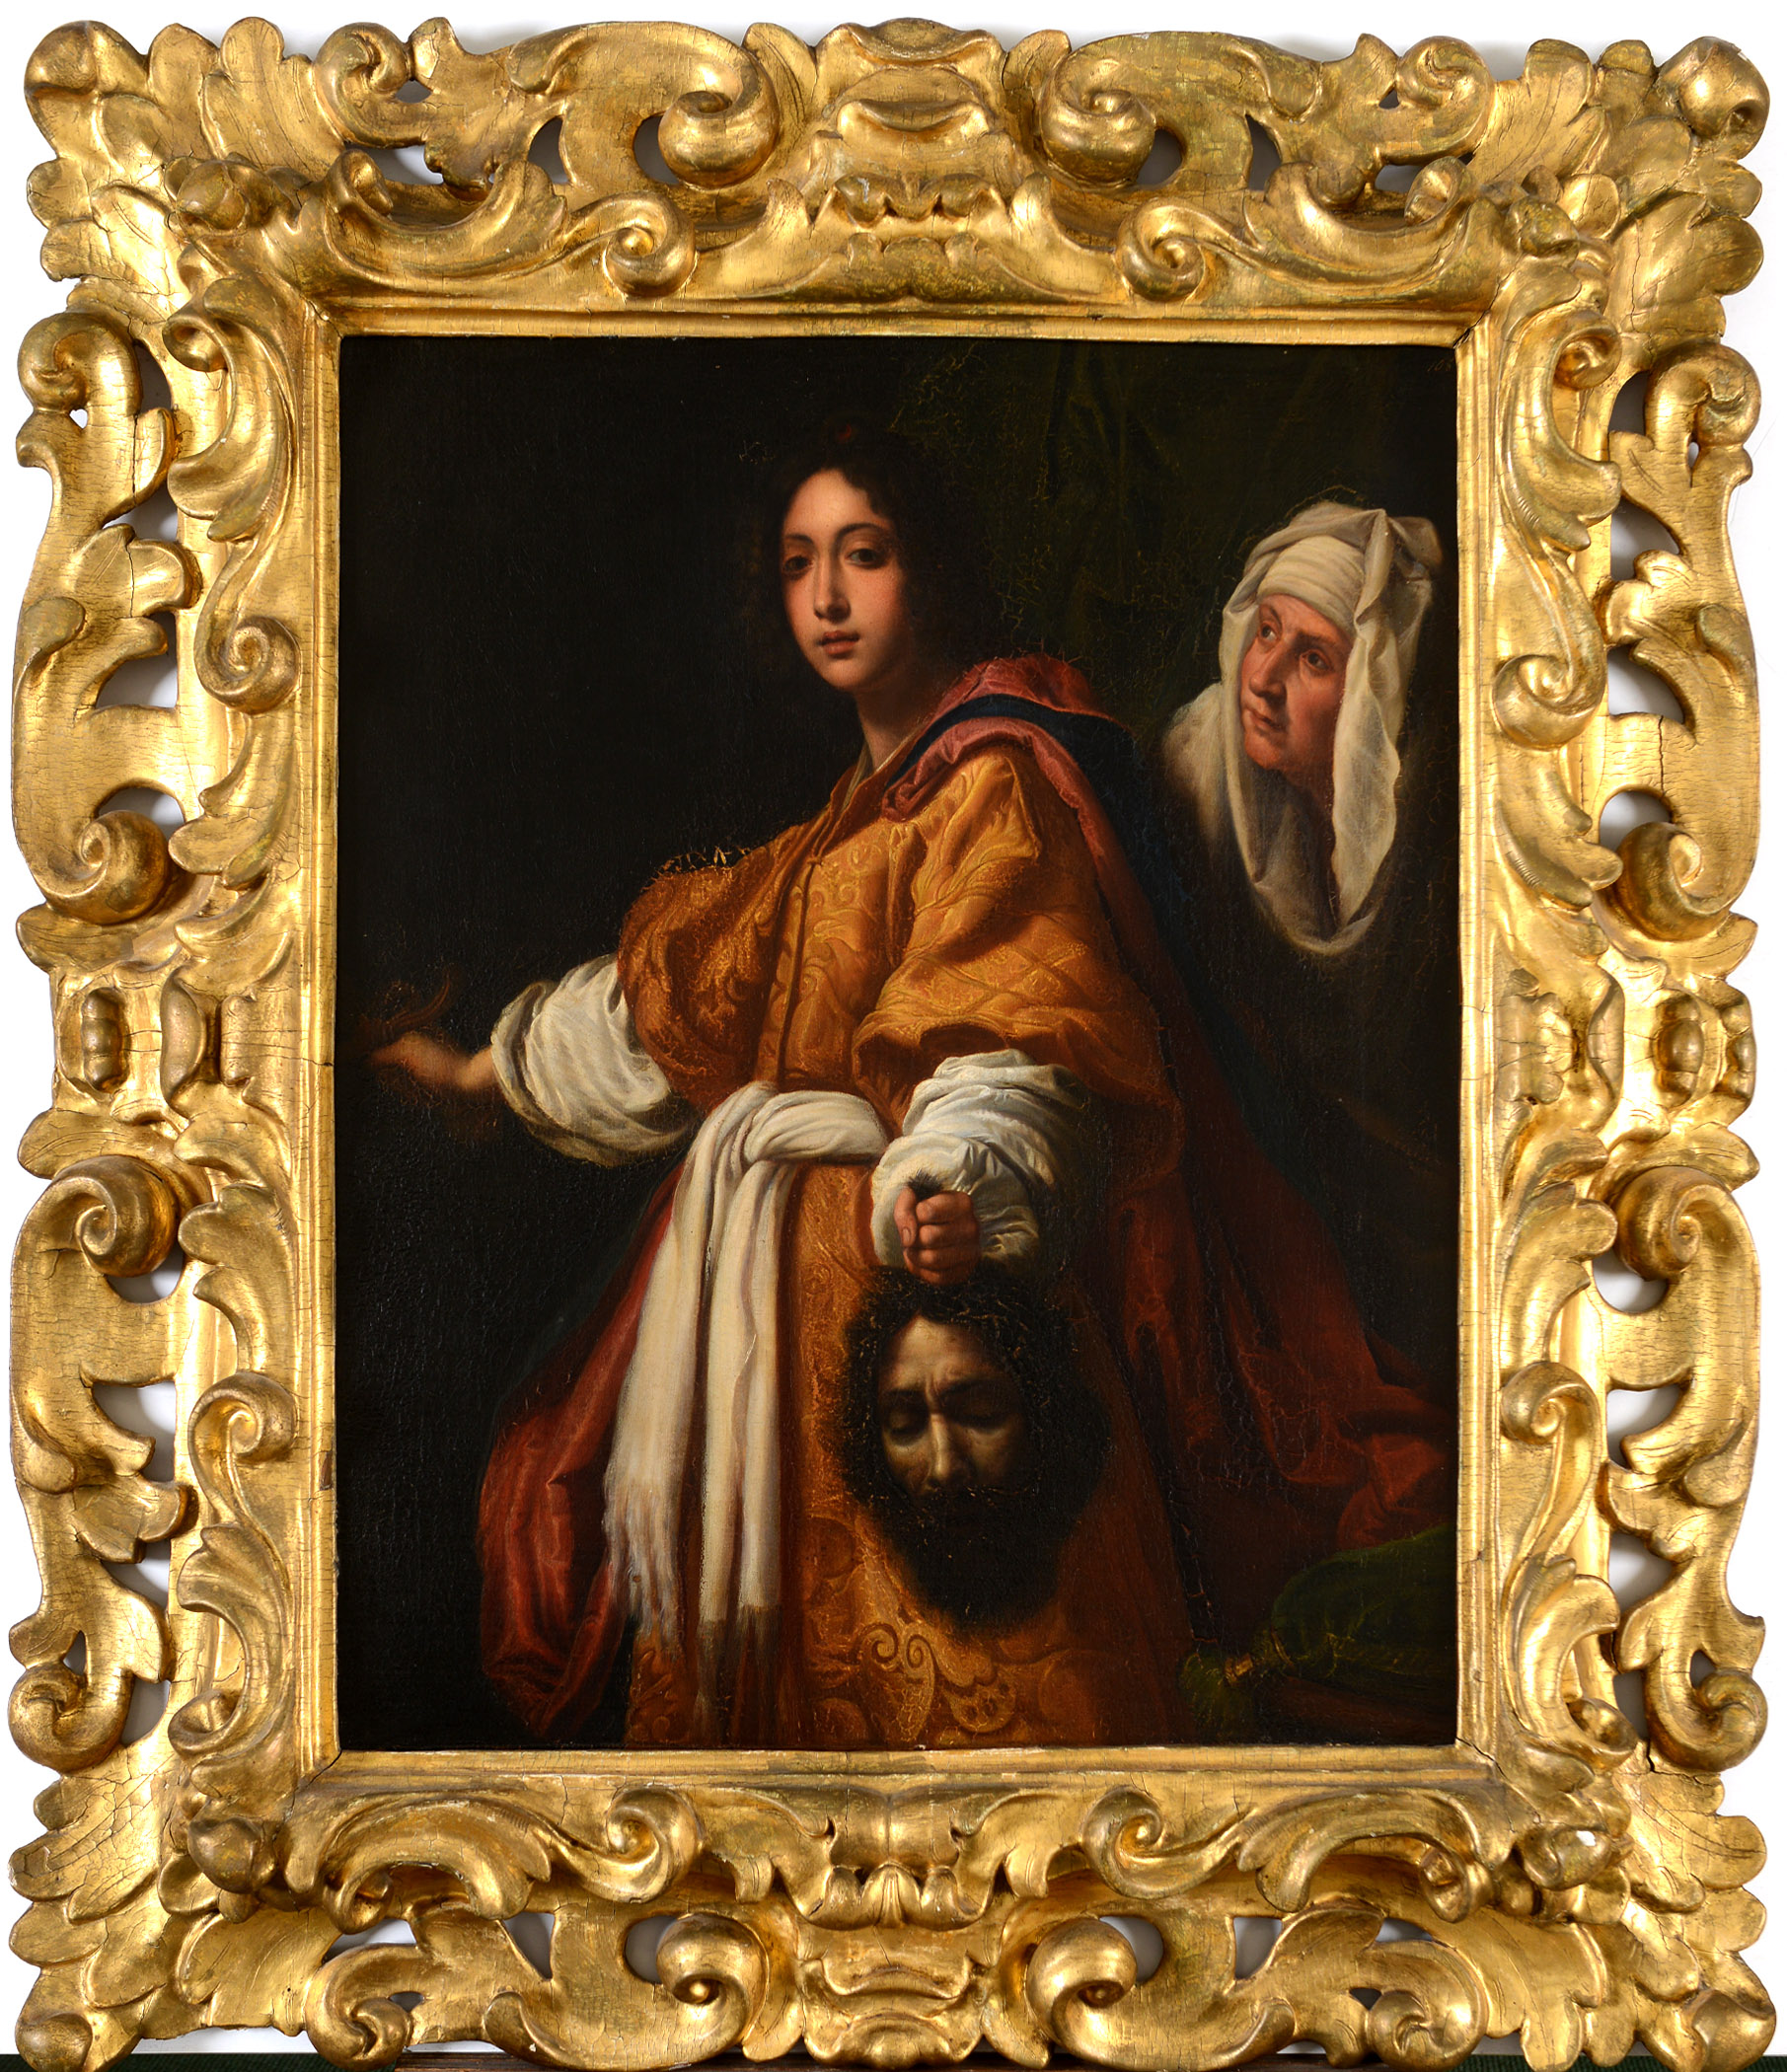 Lot 1272 - AFTER CRISTOFANO ALLORI (1577-1621) JUDITH HOLDING THE HEAD OF HOLOFERNES Oil on canvas 66 x 53cm. *